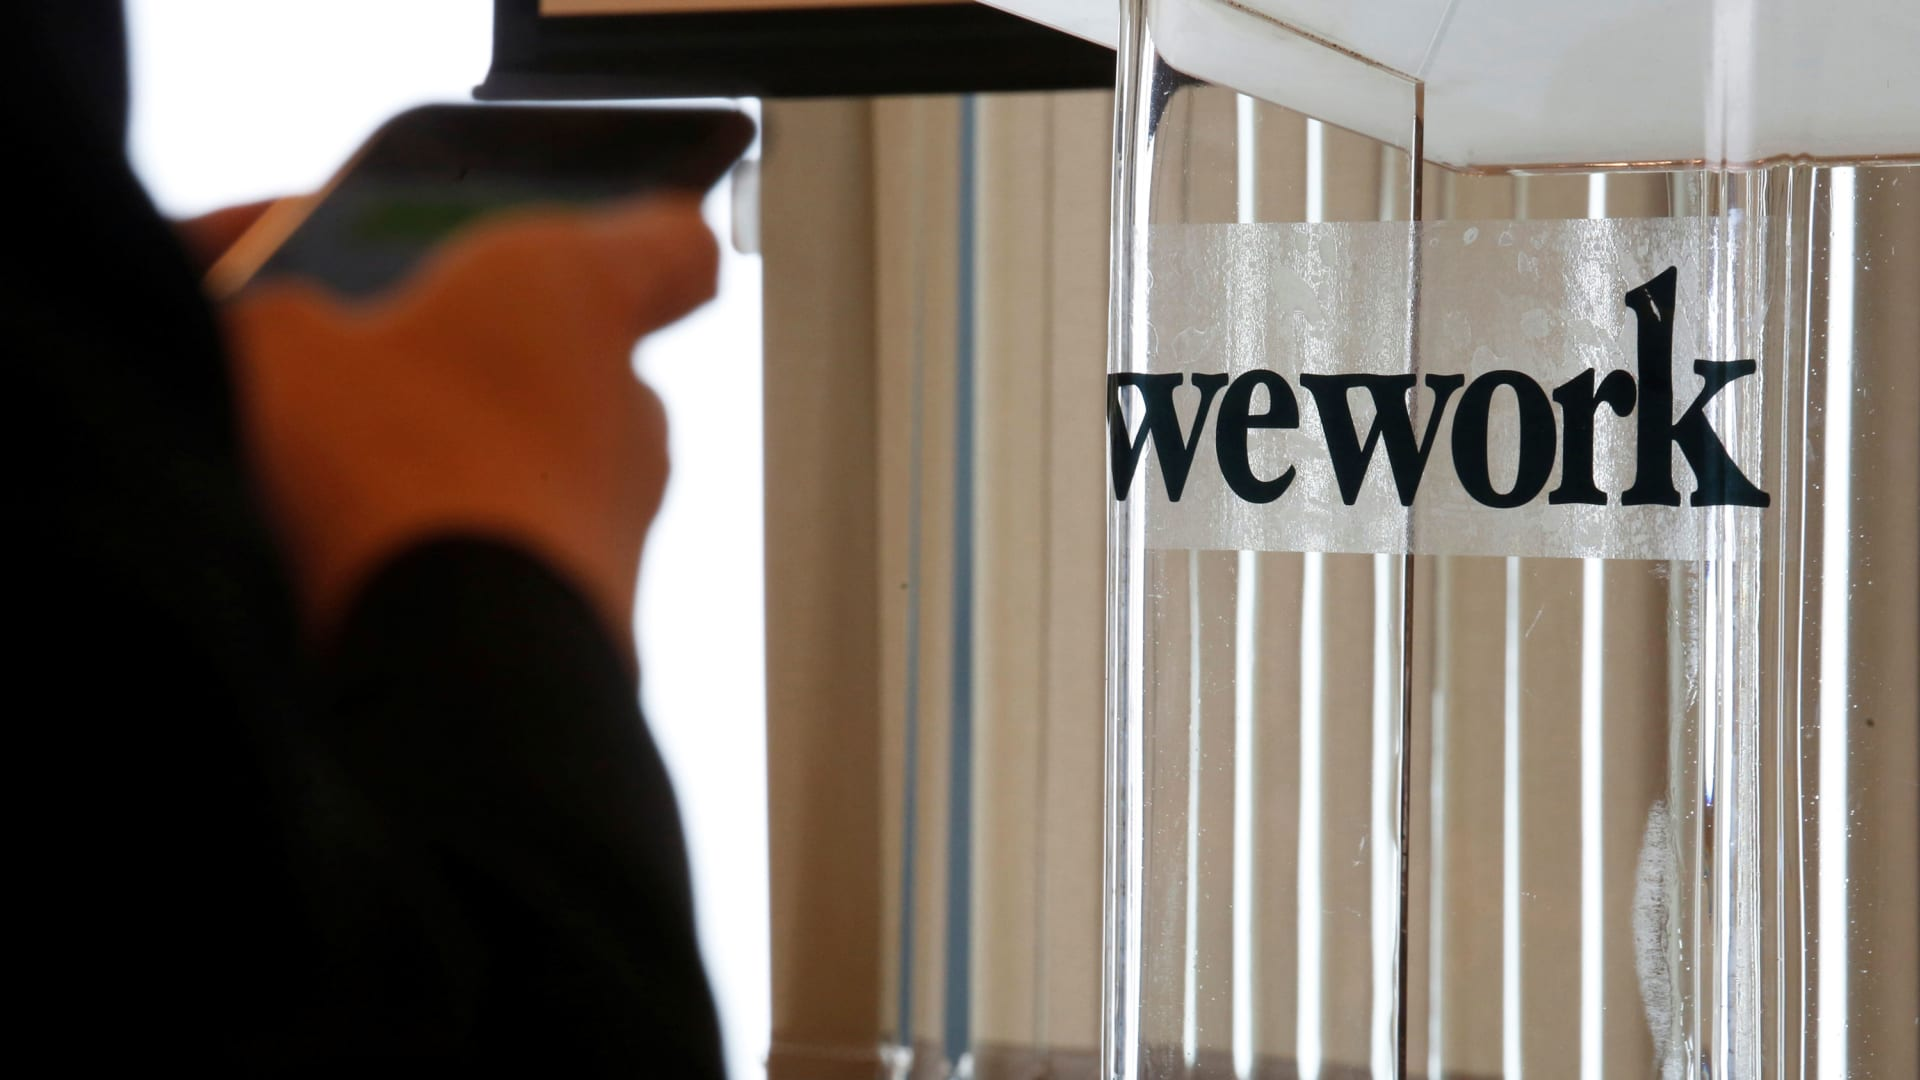 A guest attends the opening ceremony of WeWork Hong Kong flagship location in Hong Kong, China February 23, 2017.